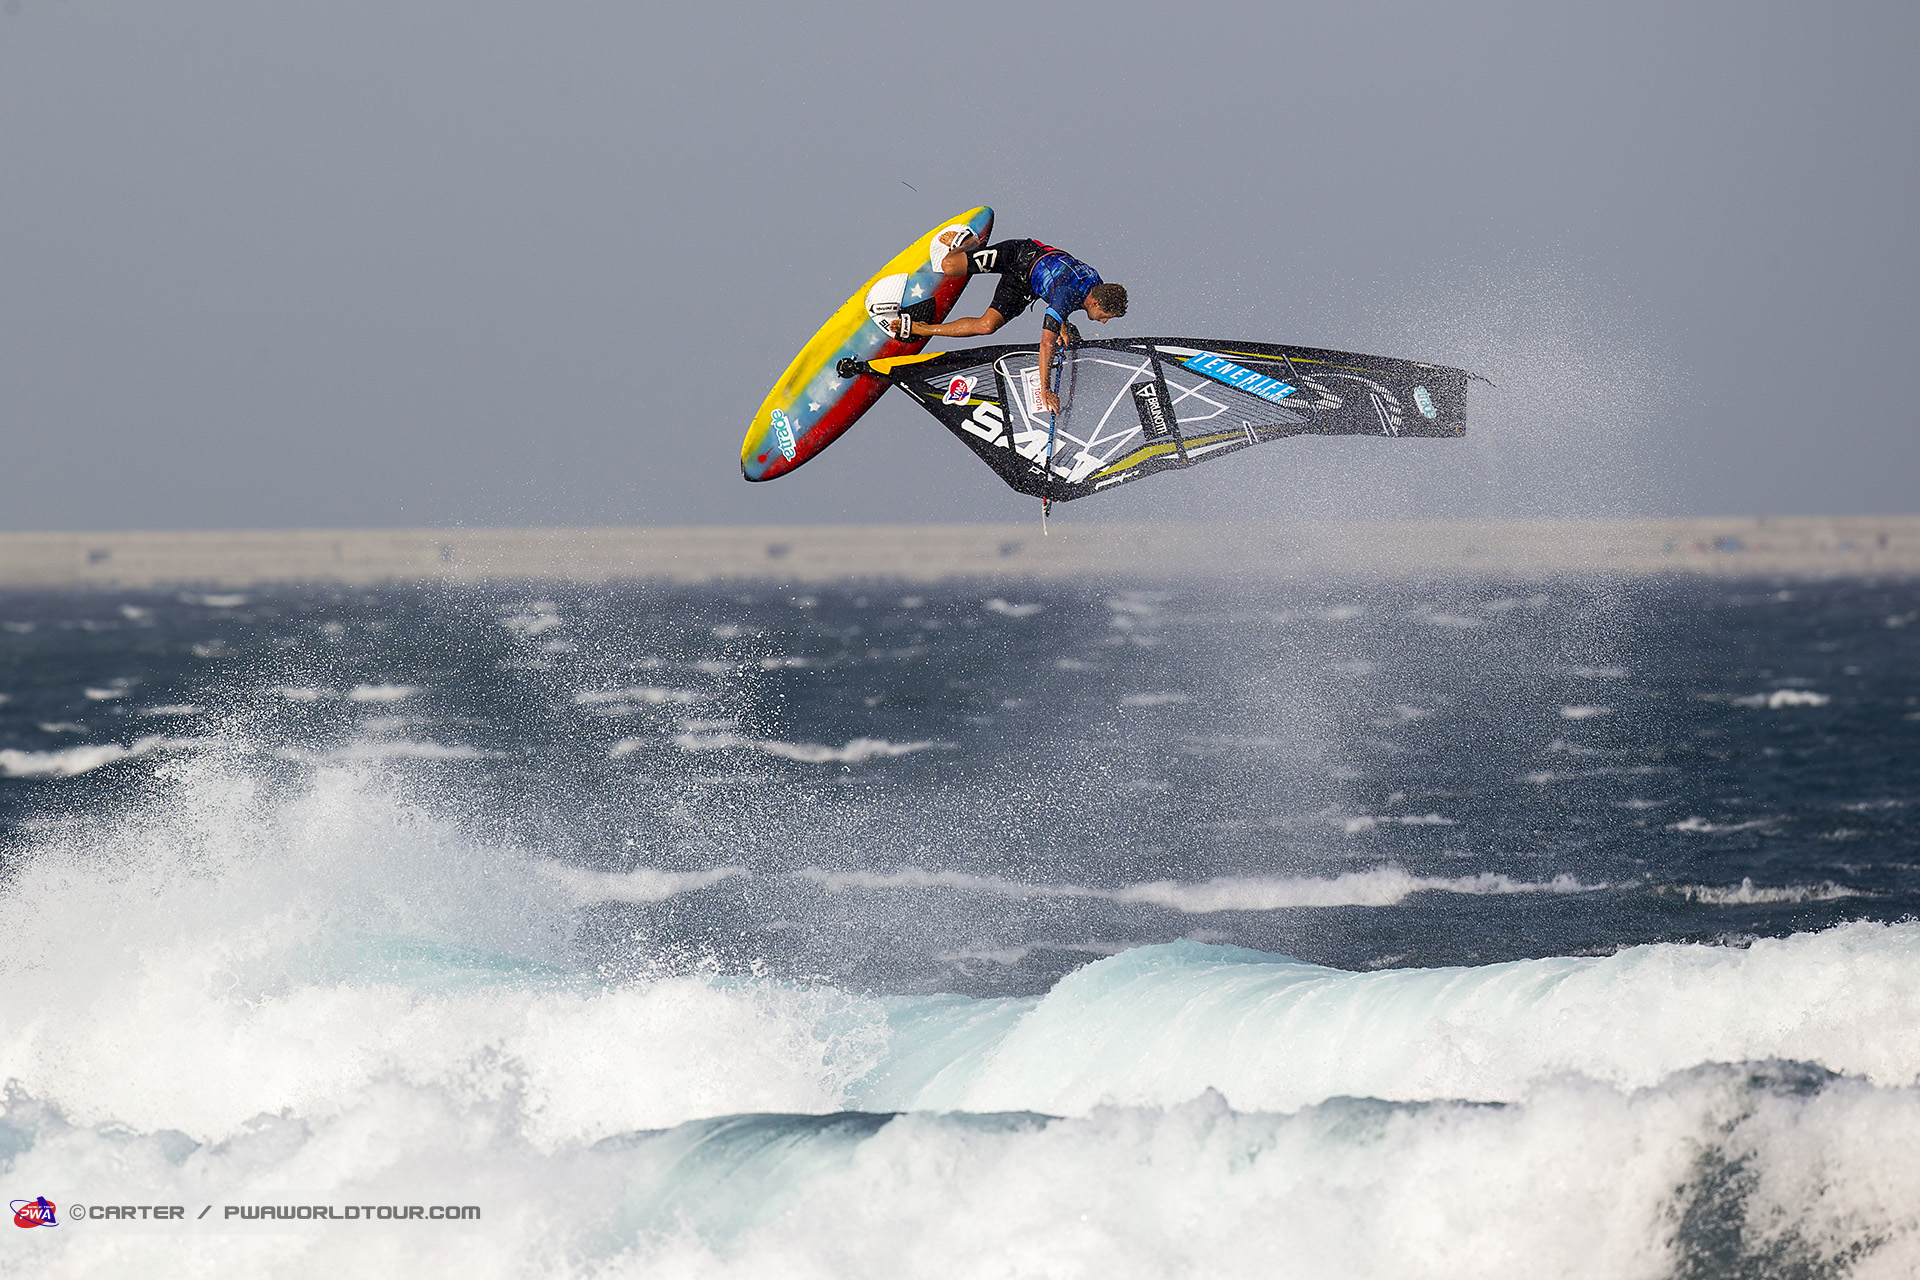 TF17_wv_Campello_flying.jpg